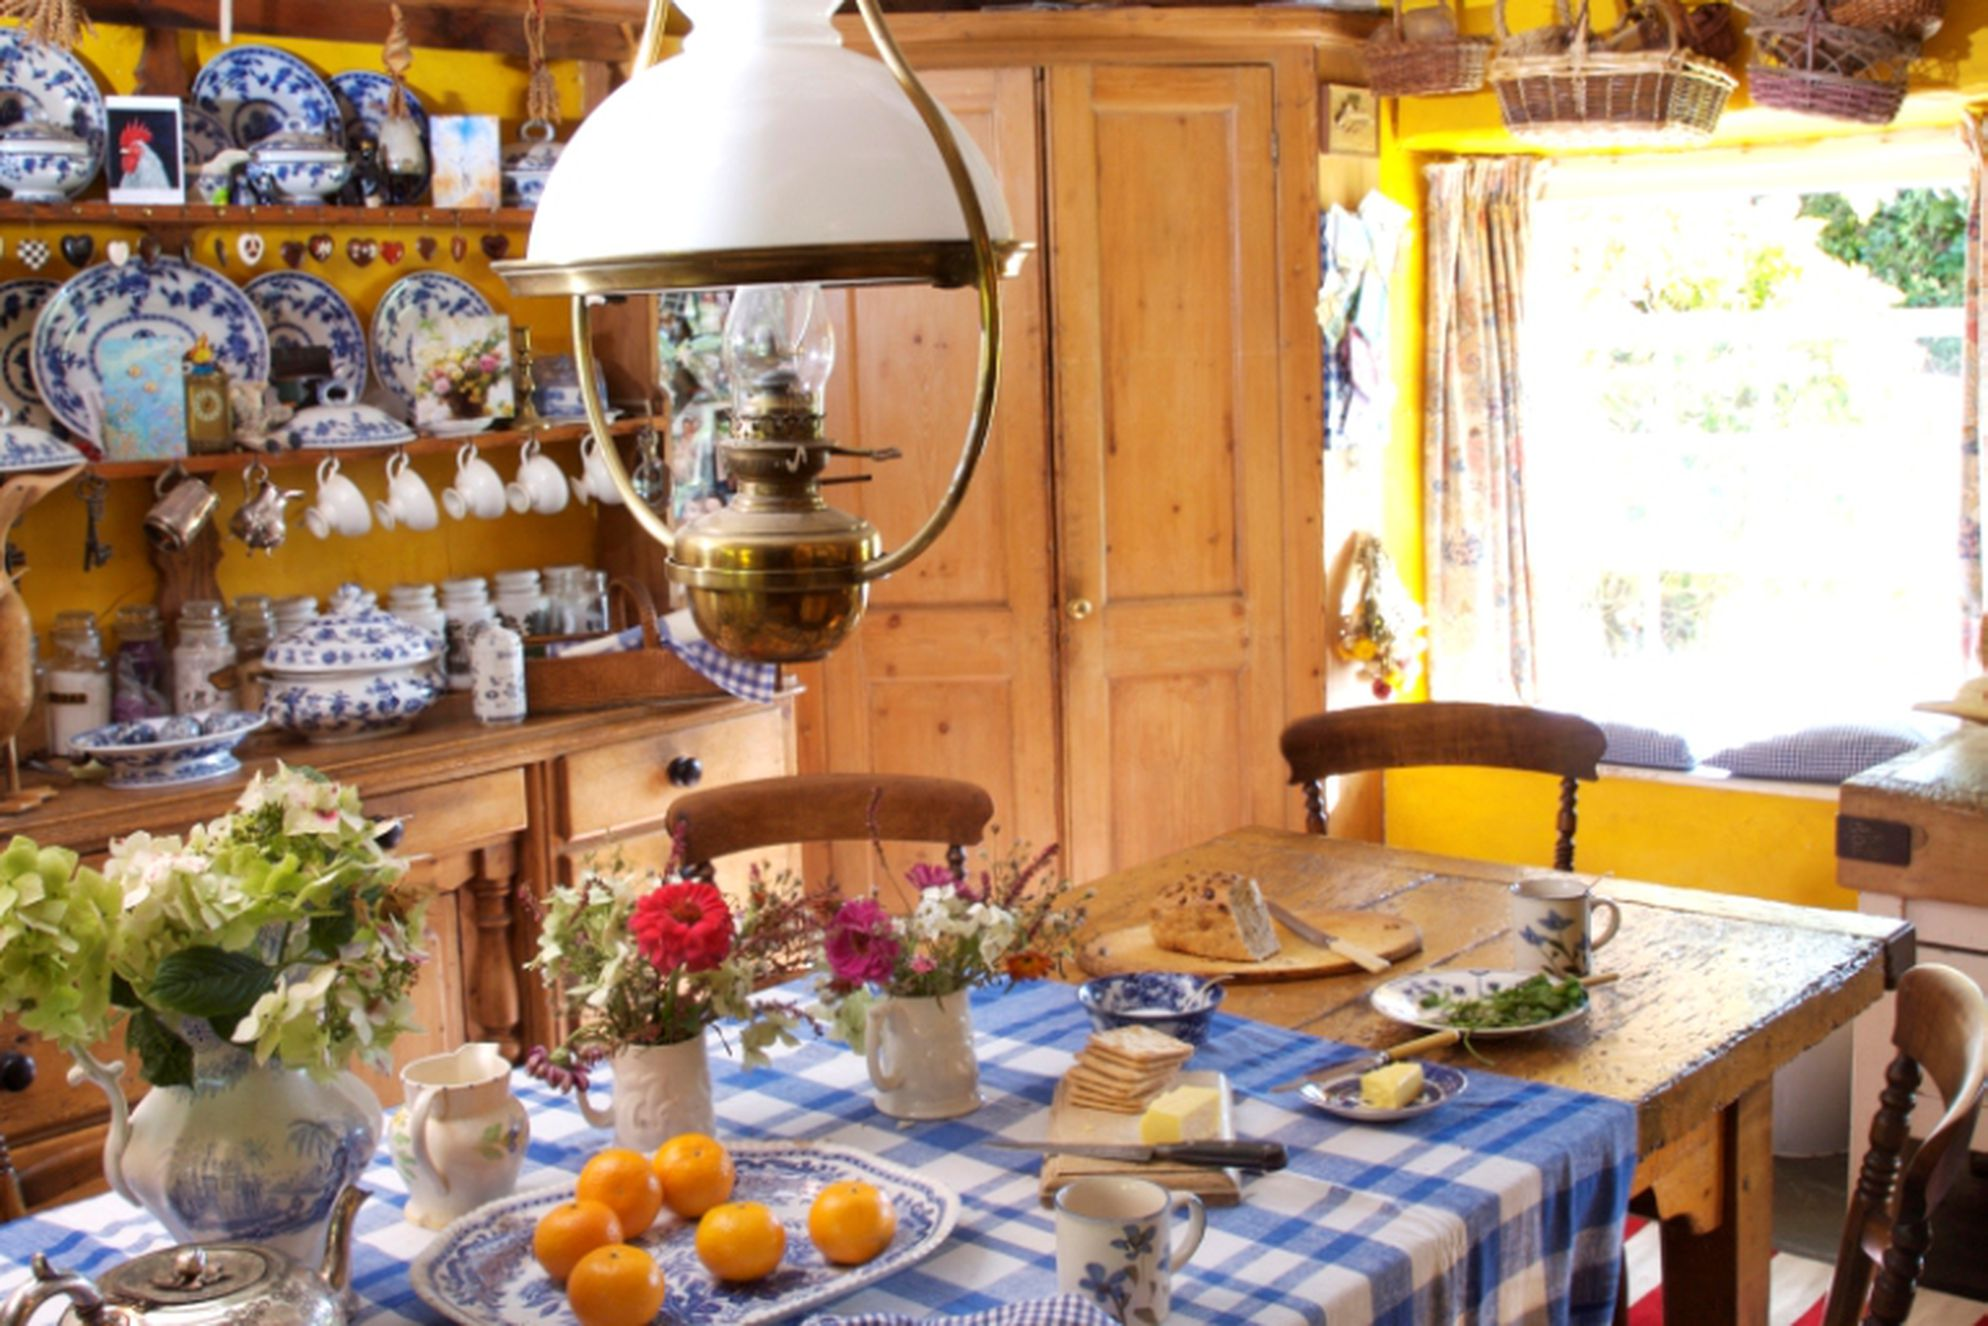 The Corn Mill Cornwall Kitchen with traditional features